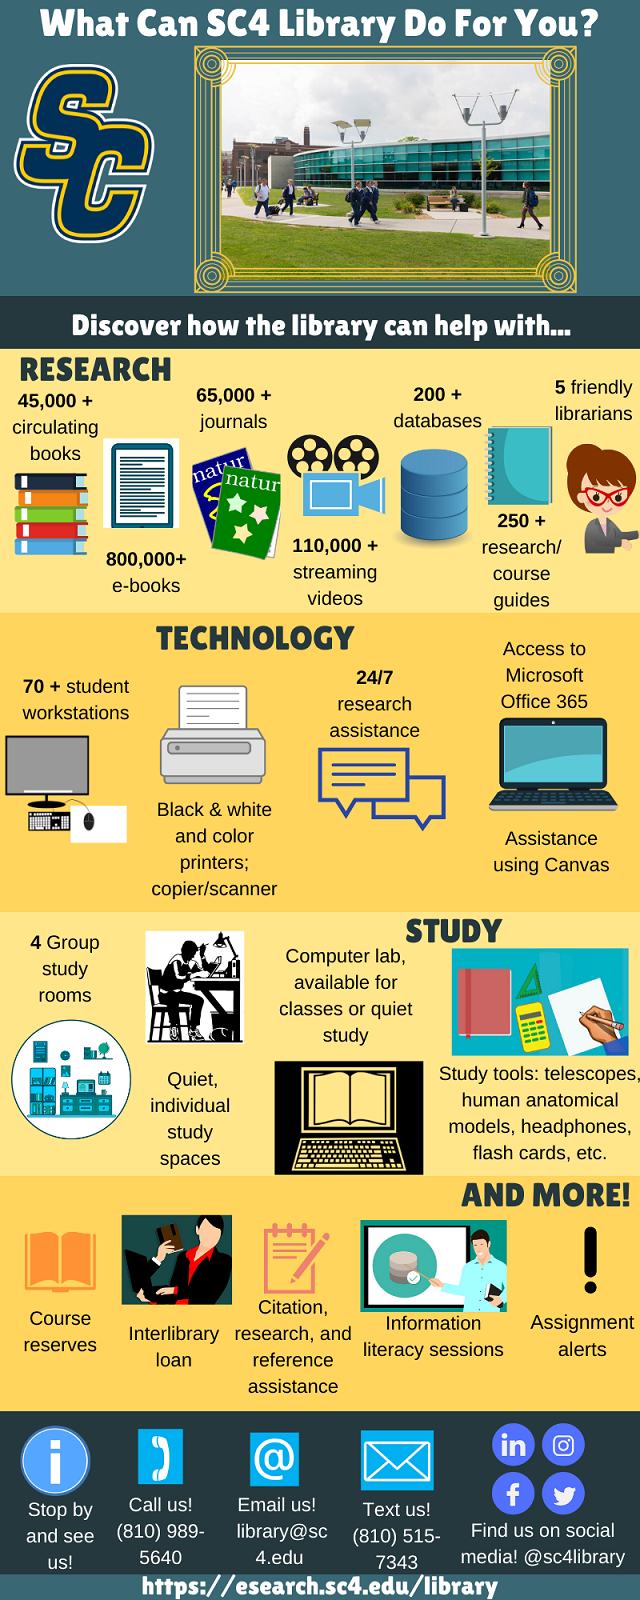 sc4 library overview infographic